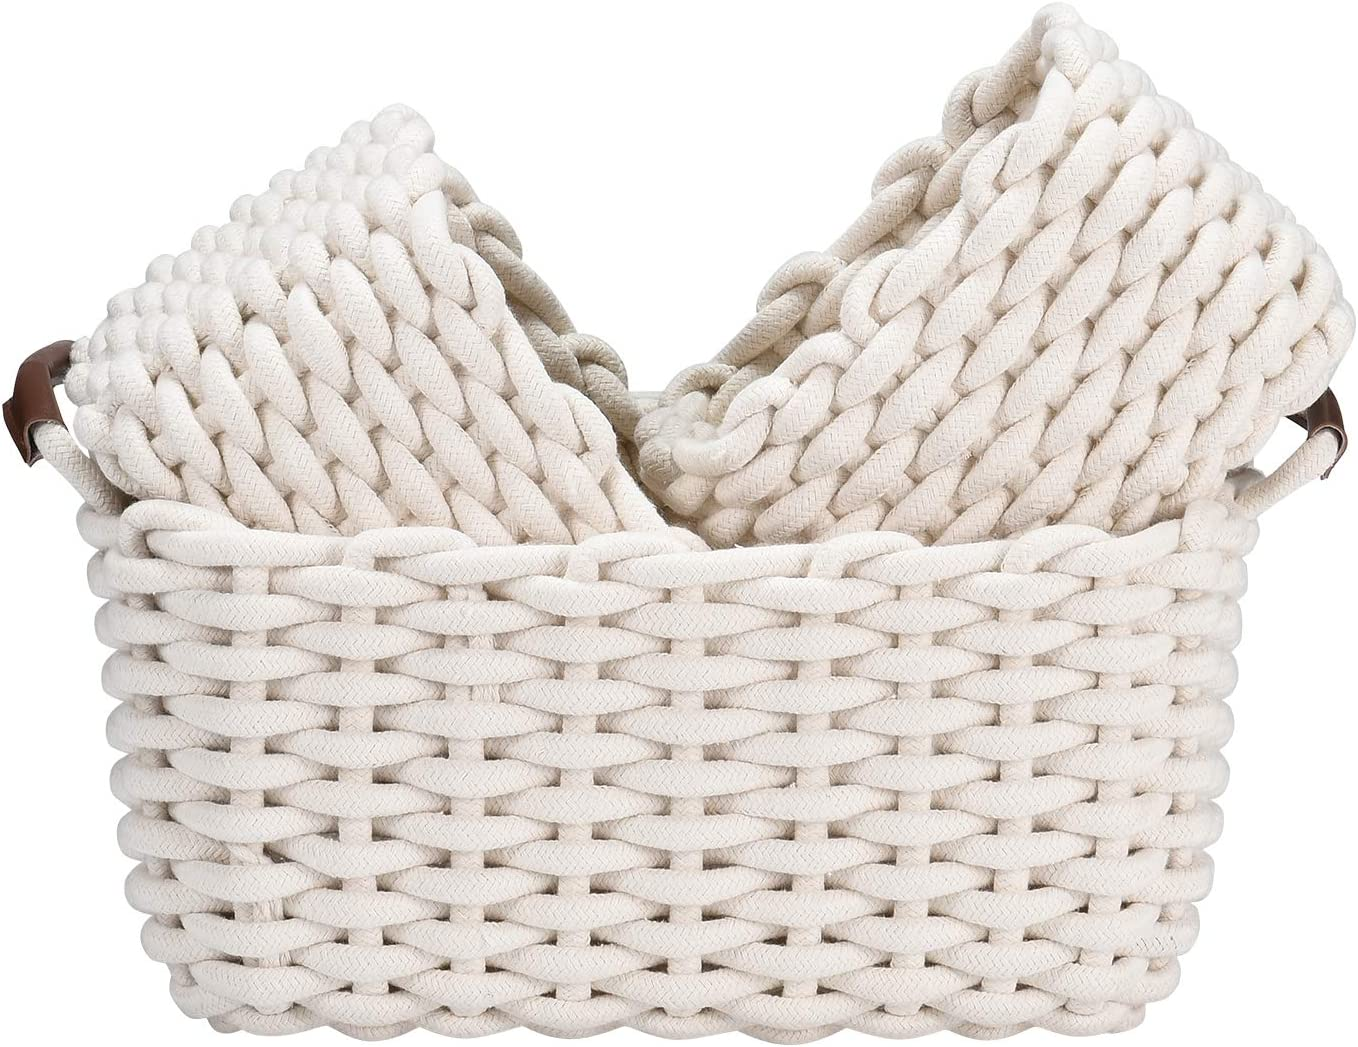 Cotton Rope Storage Basket Kids Storage Organizer Candy Food Handmade Woven Baskets for Nursery Baby Clothes Towels Diaper Caddy Books 3 Pack